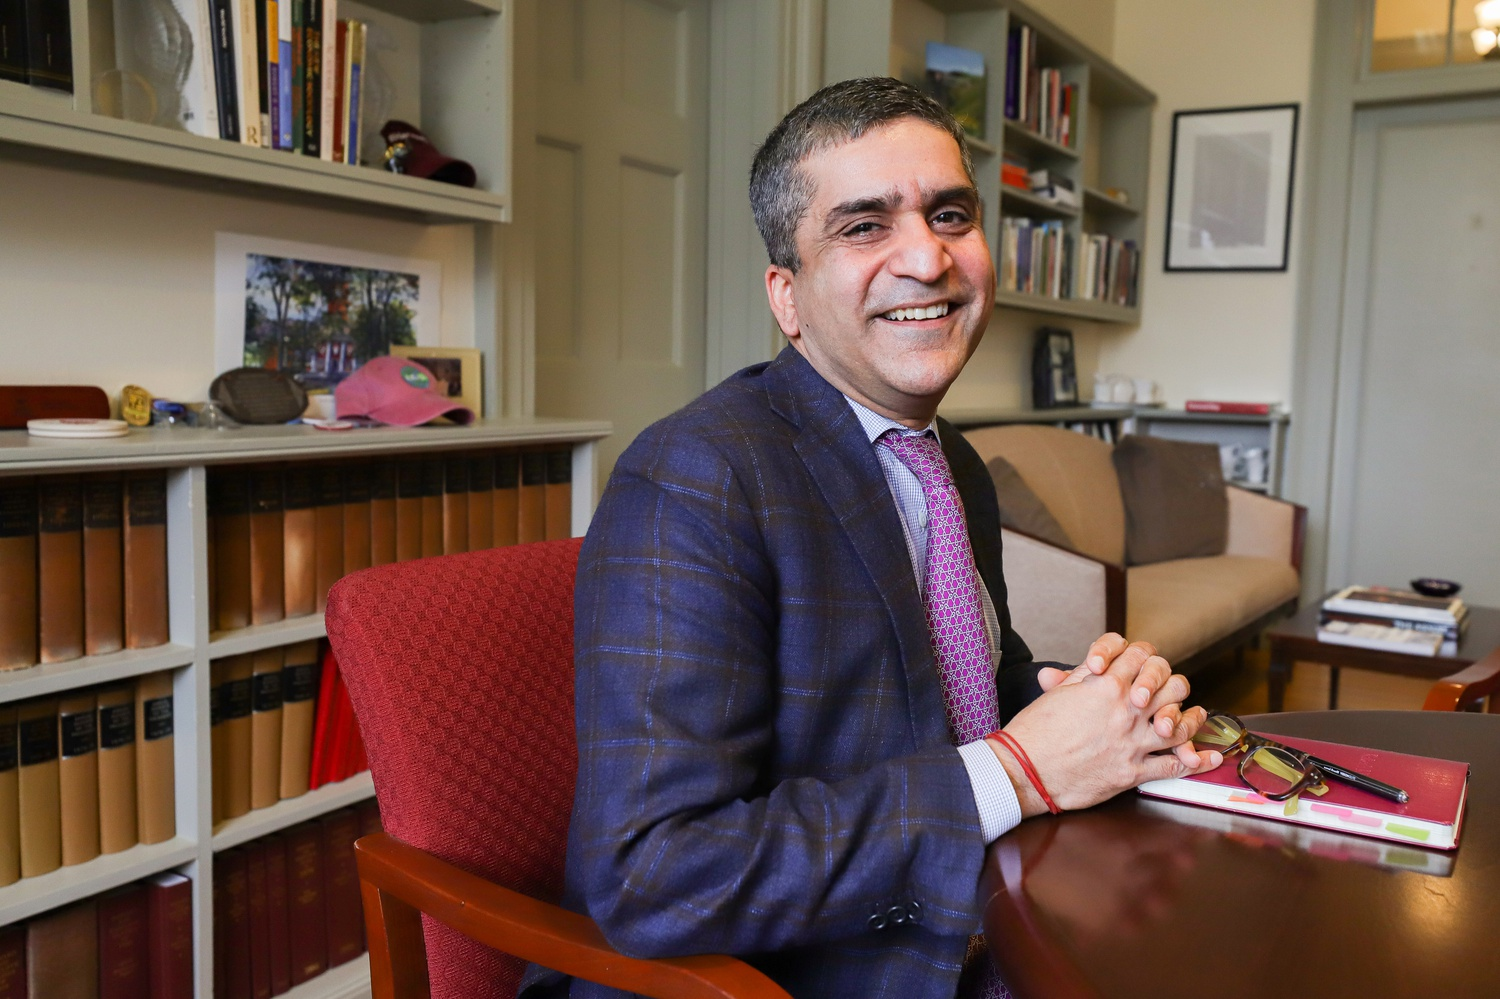 Dean of the College Rakesh Khurana said further changes to Harvard's General Education system are slated for upcoming semesters.